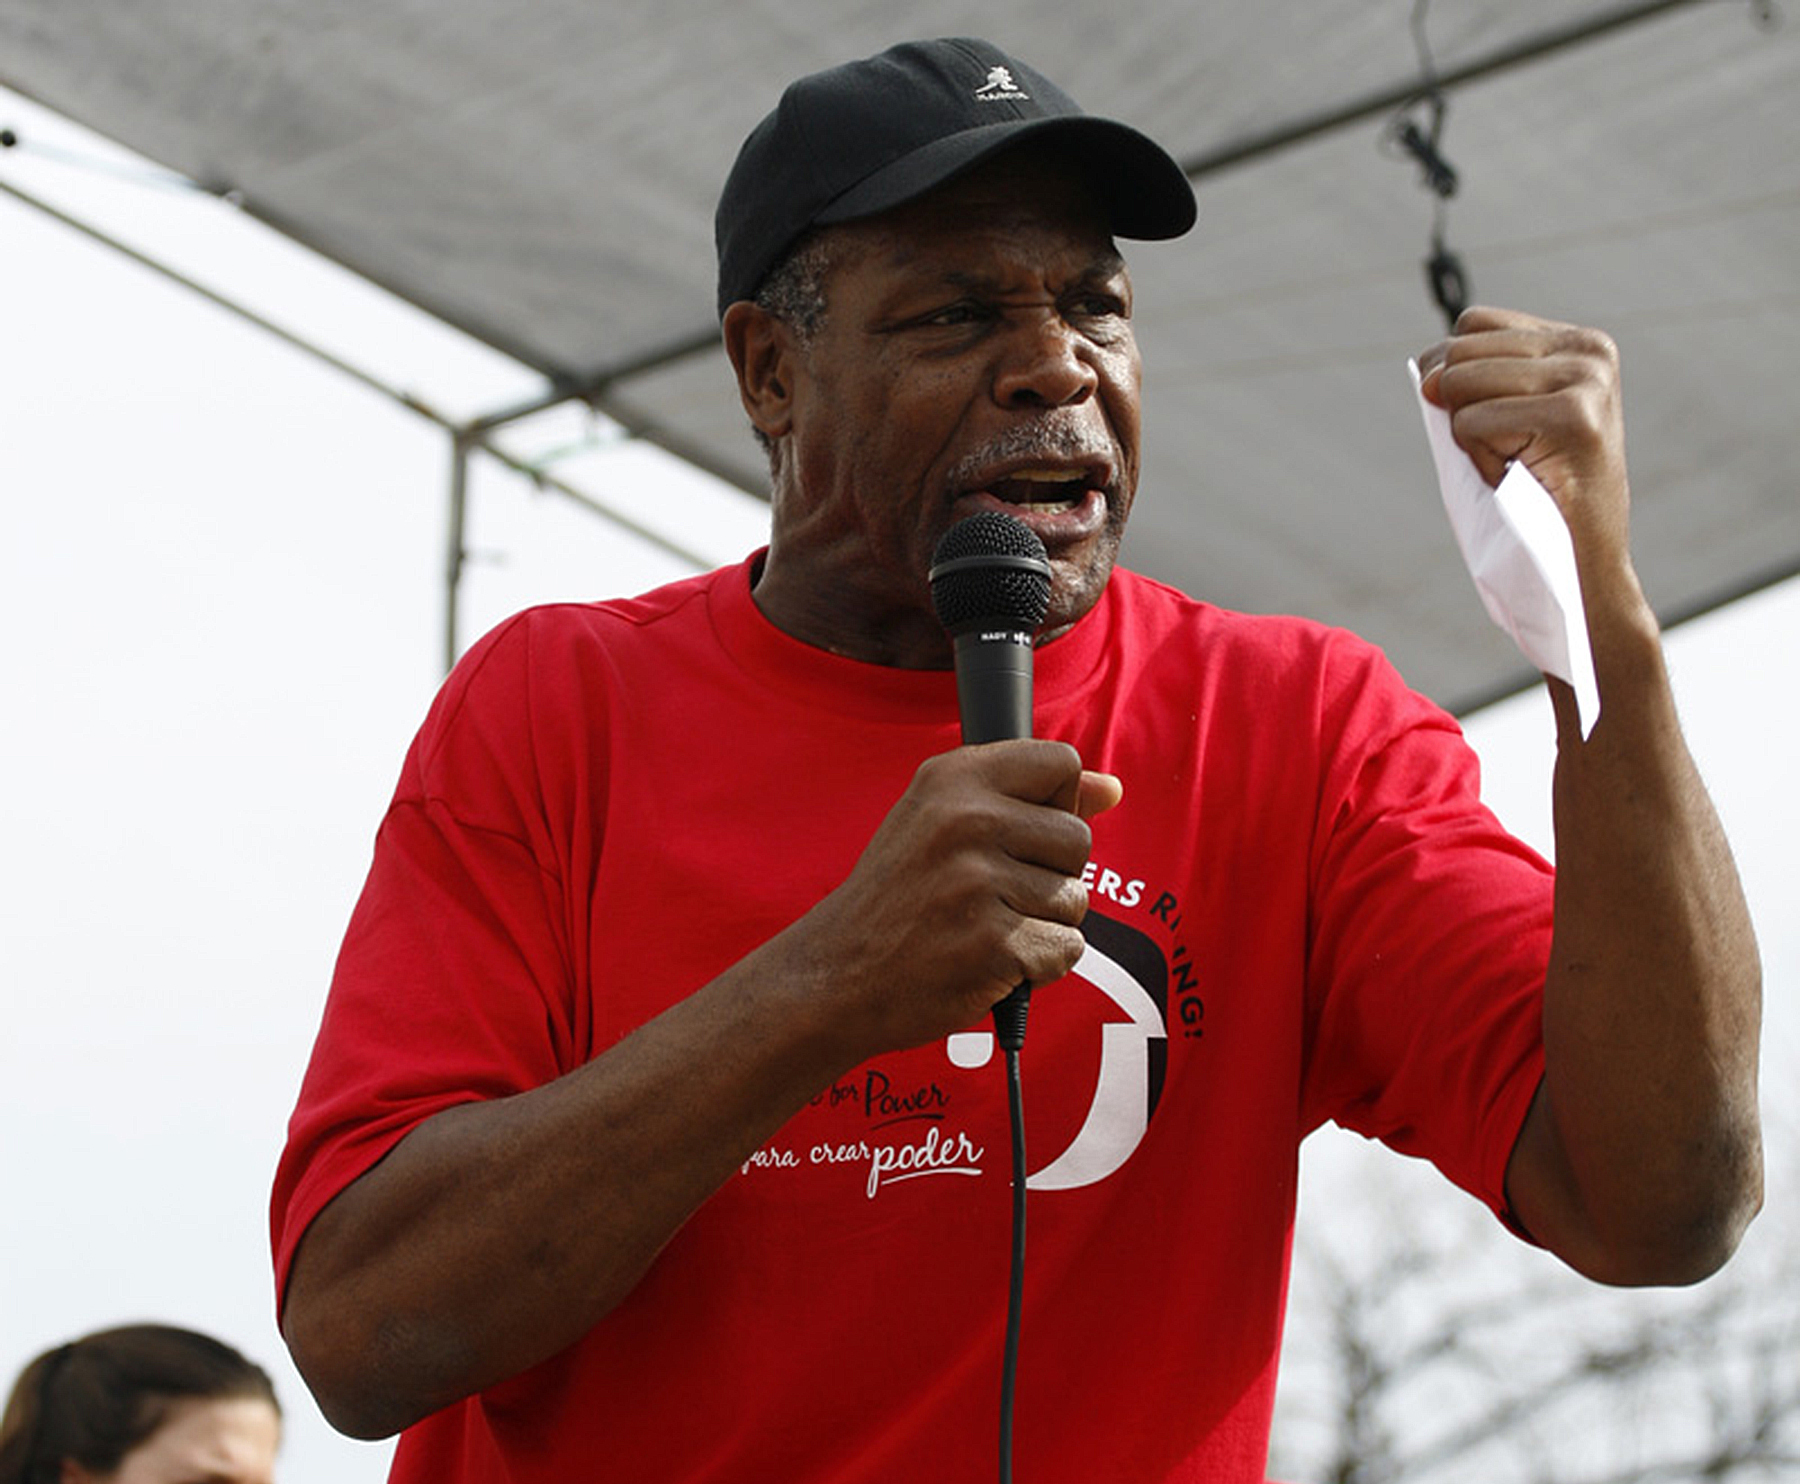 Danny Glover speaks at a March for Immigrants Rights in Madison, Wisconsin, USA.